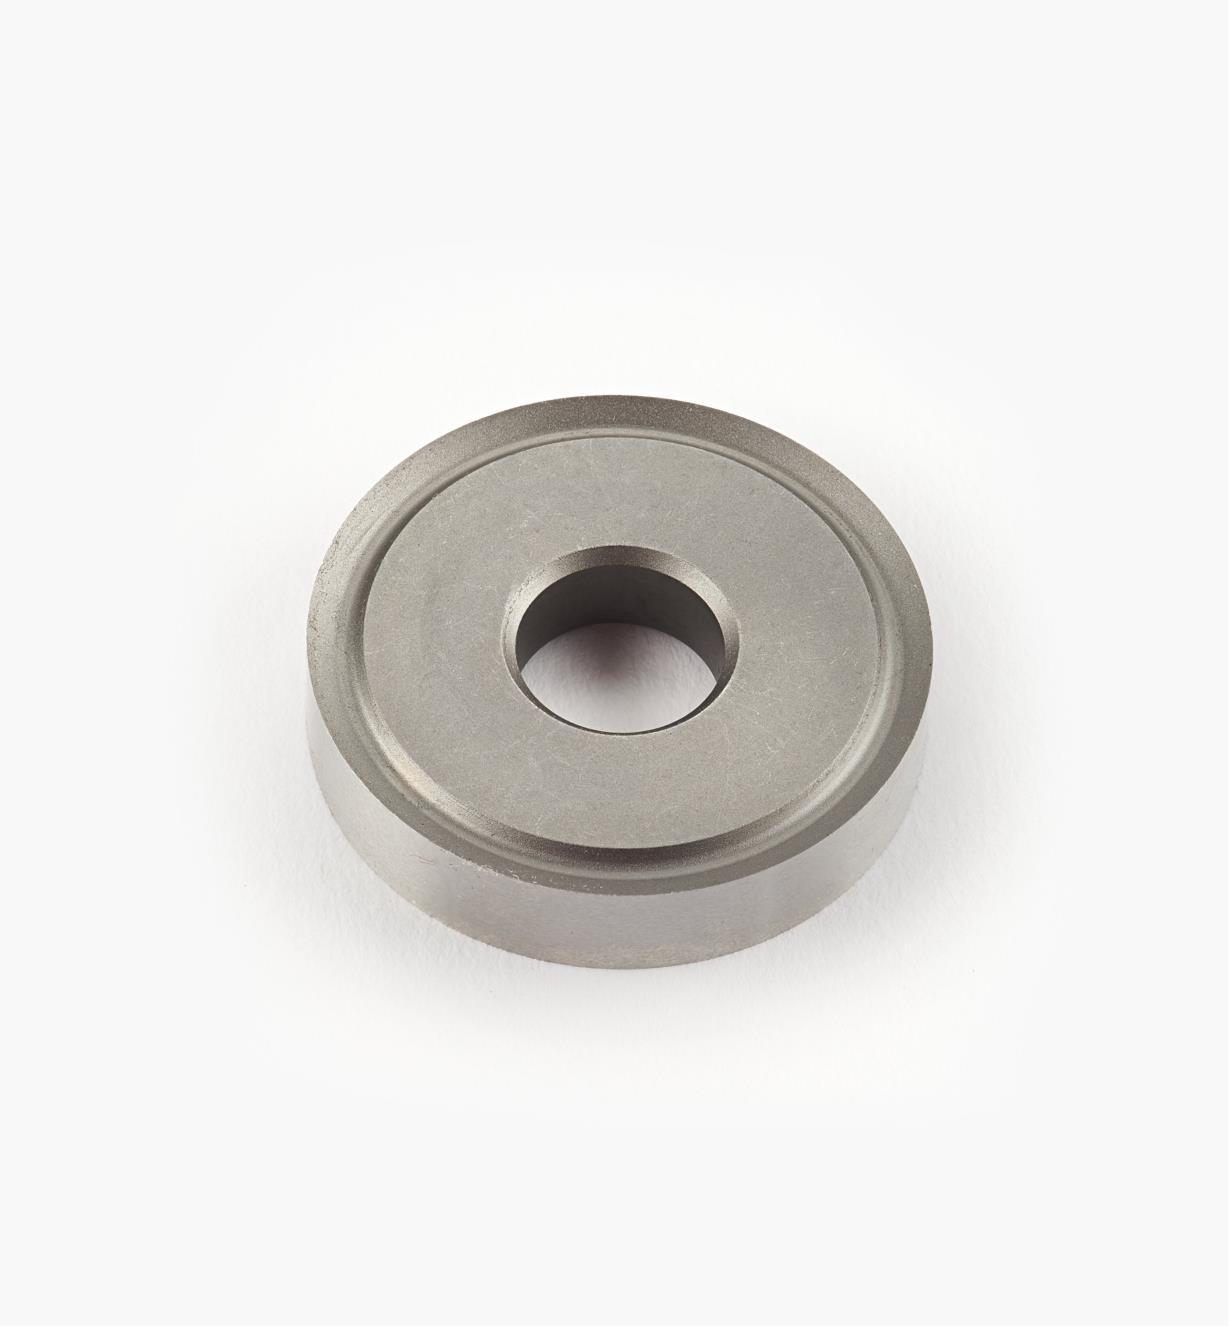 99T3334  - Replacement Cutter for Ball Gouge